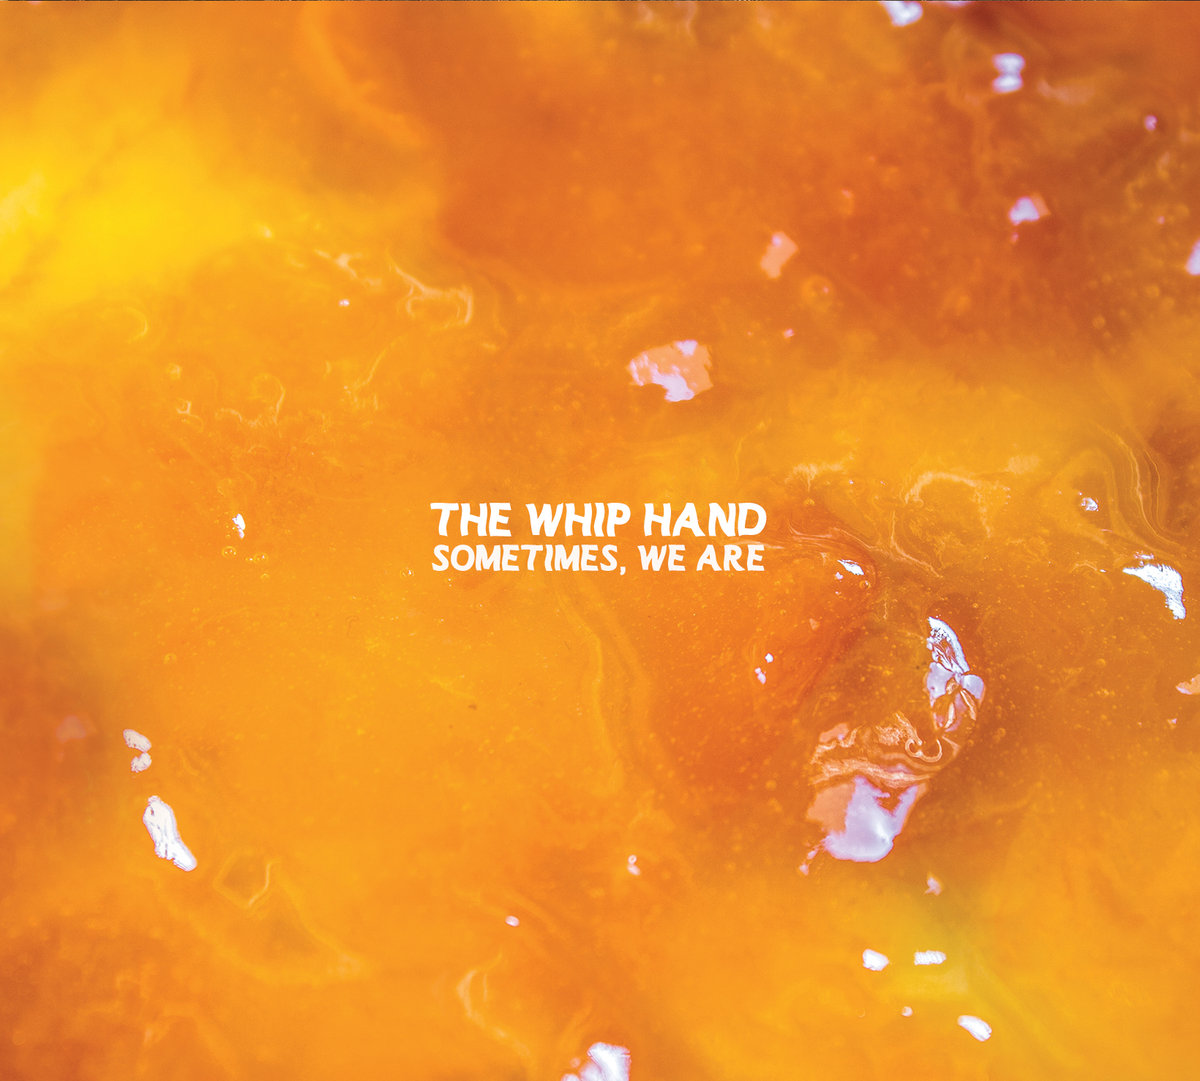 the whip hand - sometimes we are